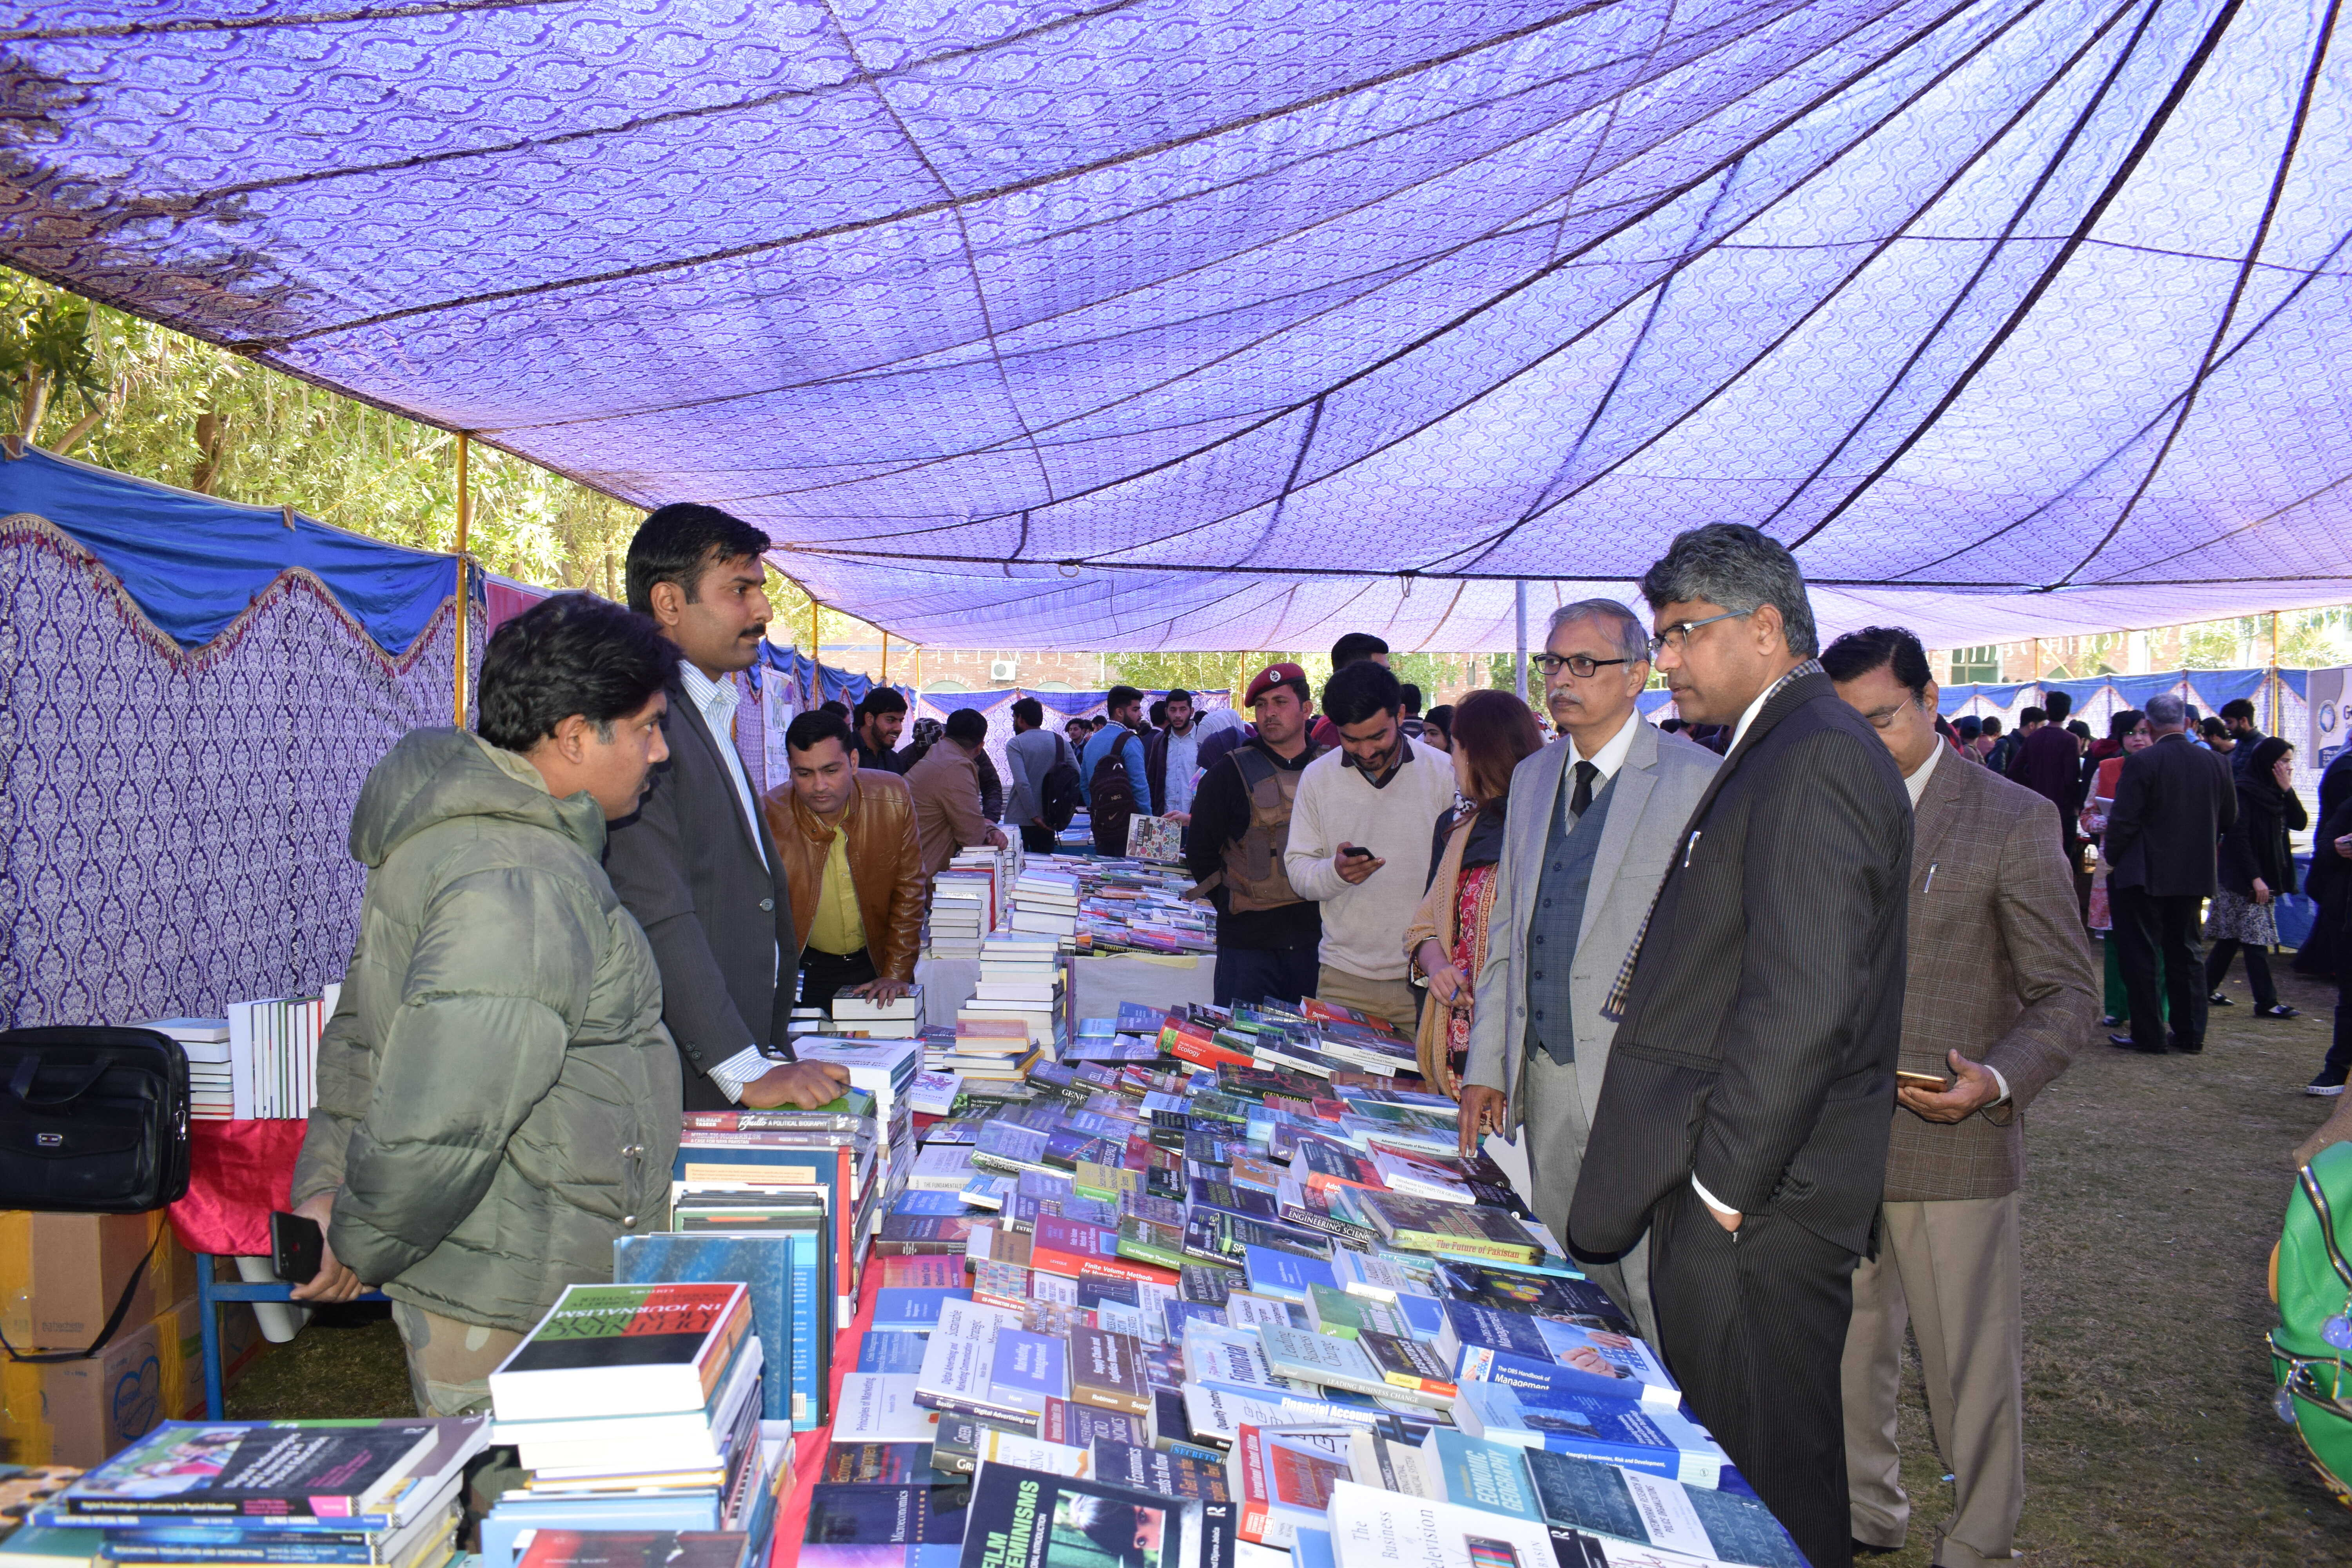 Two days Book fair opening ceremony done by the Vice Chancellor USKT Prof. Dr Ijaz A. Qureshi. Faculty and Students also participated and visited books stalls at USKT Lawn.